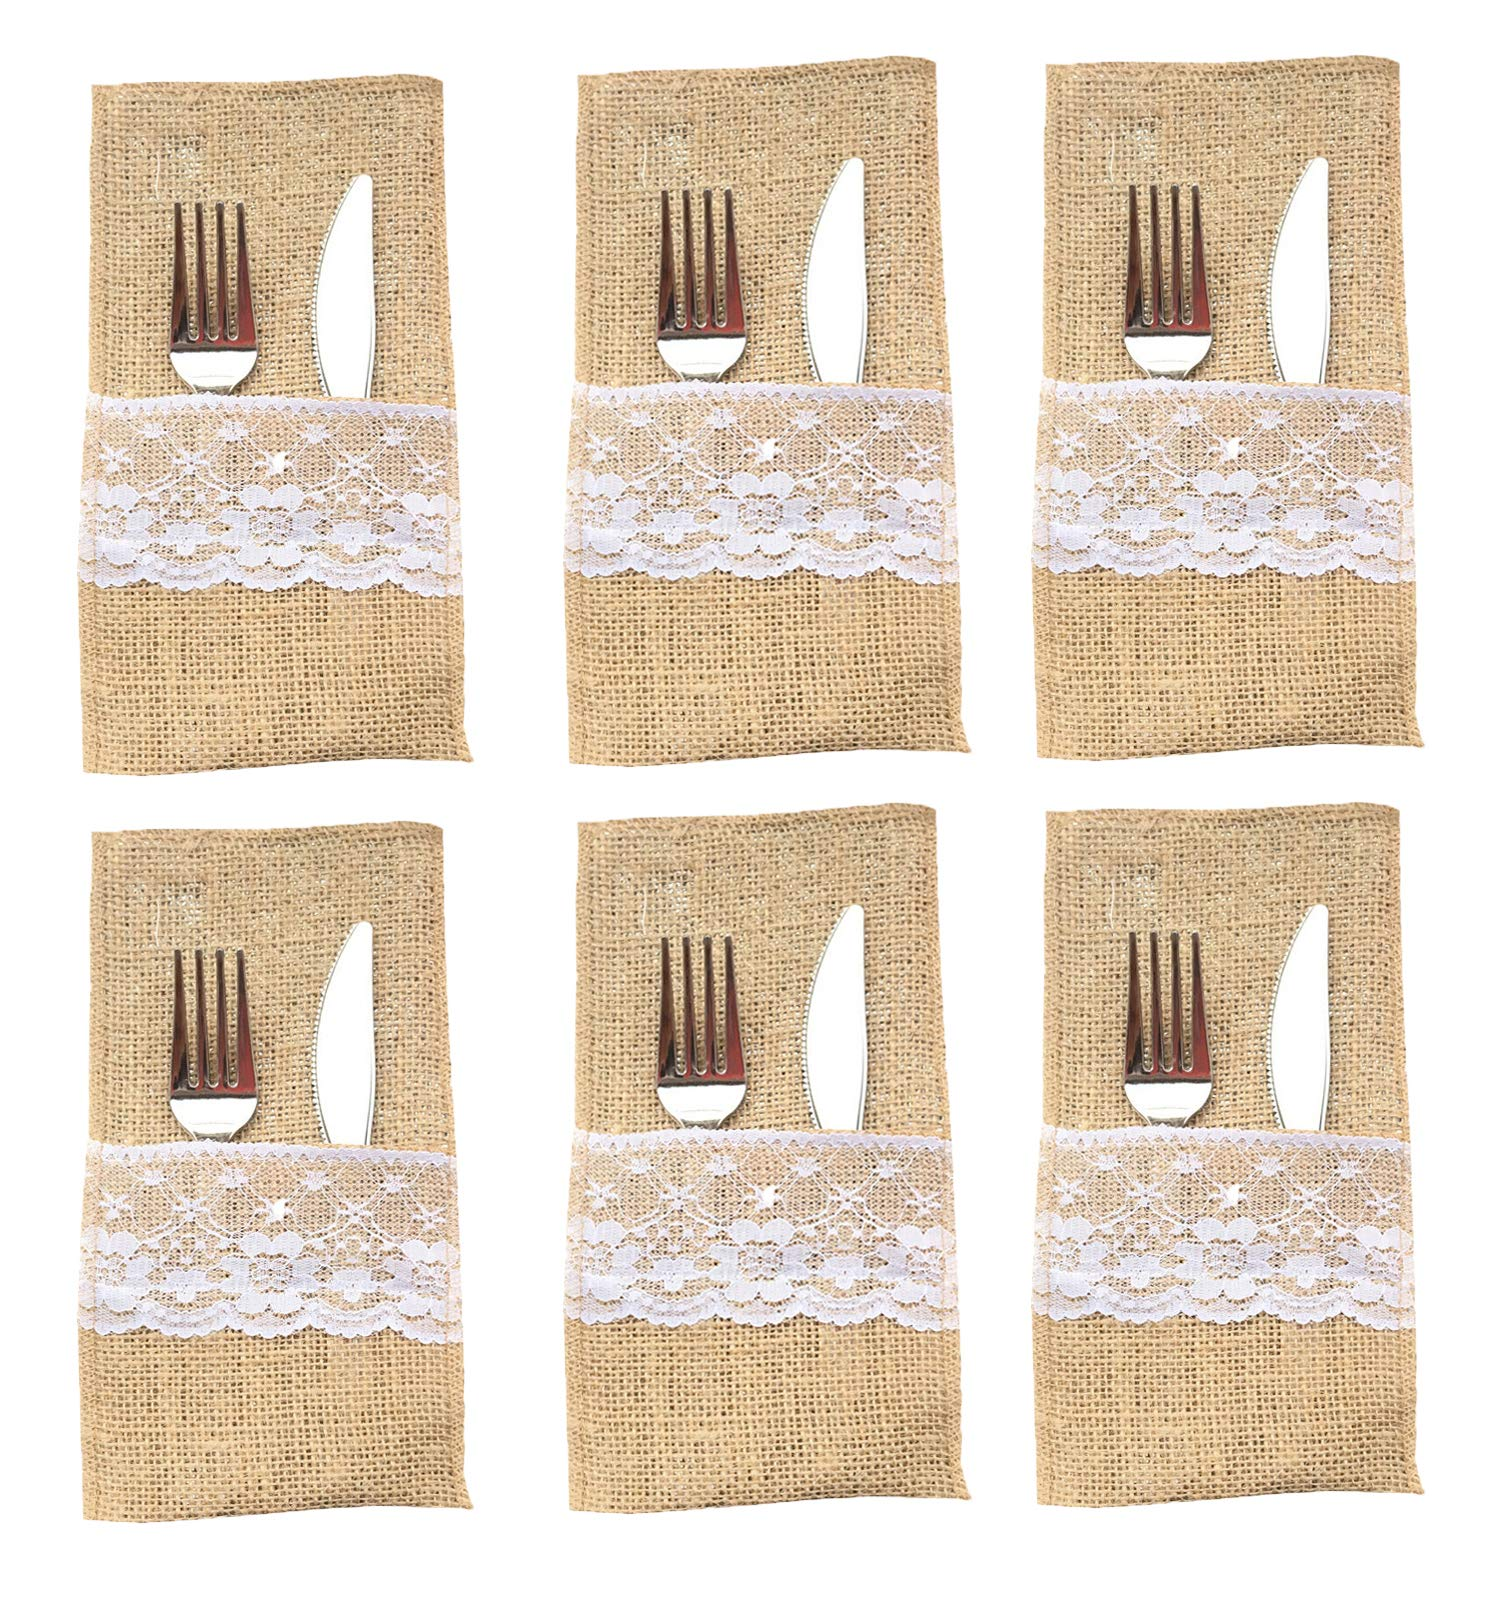 YUMMAYEE Burlap Lace Utensil Holders Silverware Cutlery Pouch Knifes Forks Bag for Rustic Wedding Party Bridal Baby Shower Christmas Favor Decorations Gifts